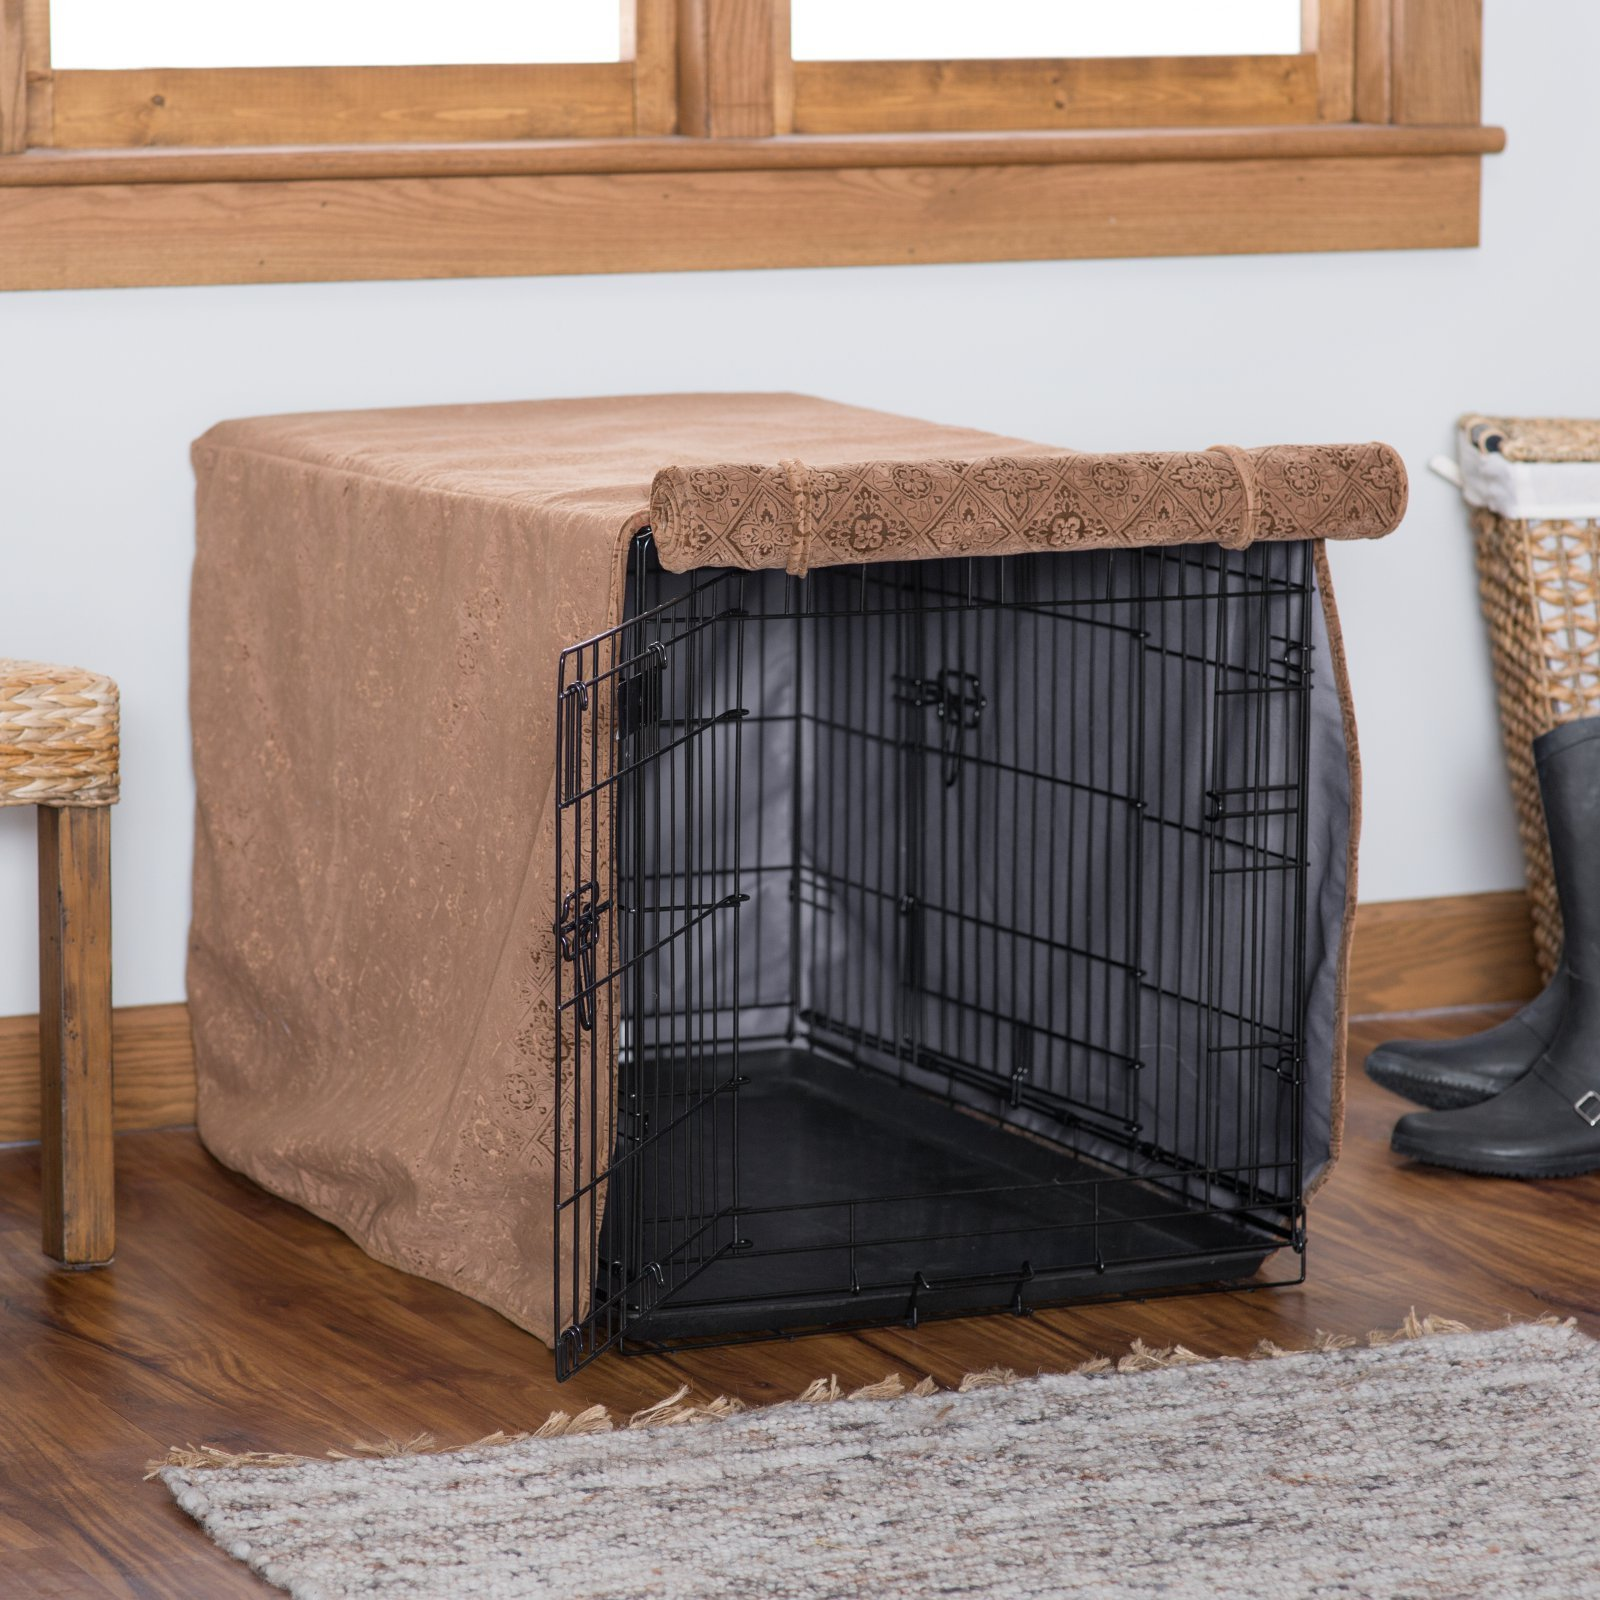 Luxury Crate Cover Size: X-Large (30'' H x 28'' W x 42'' L) by Bowsers (Image #6)